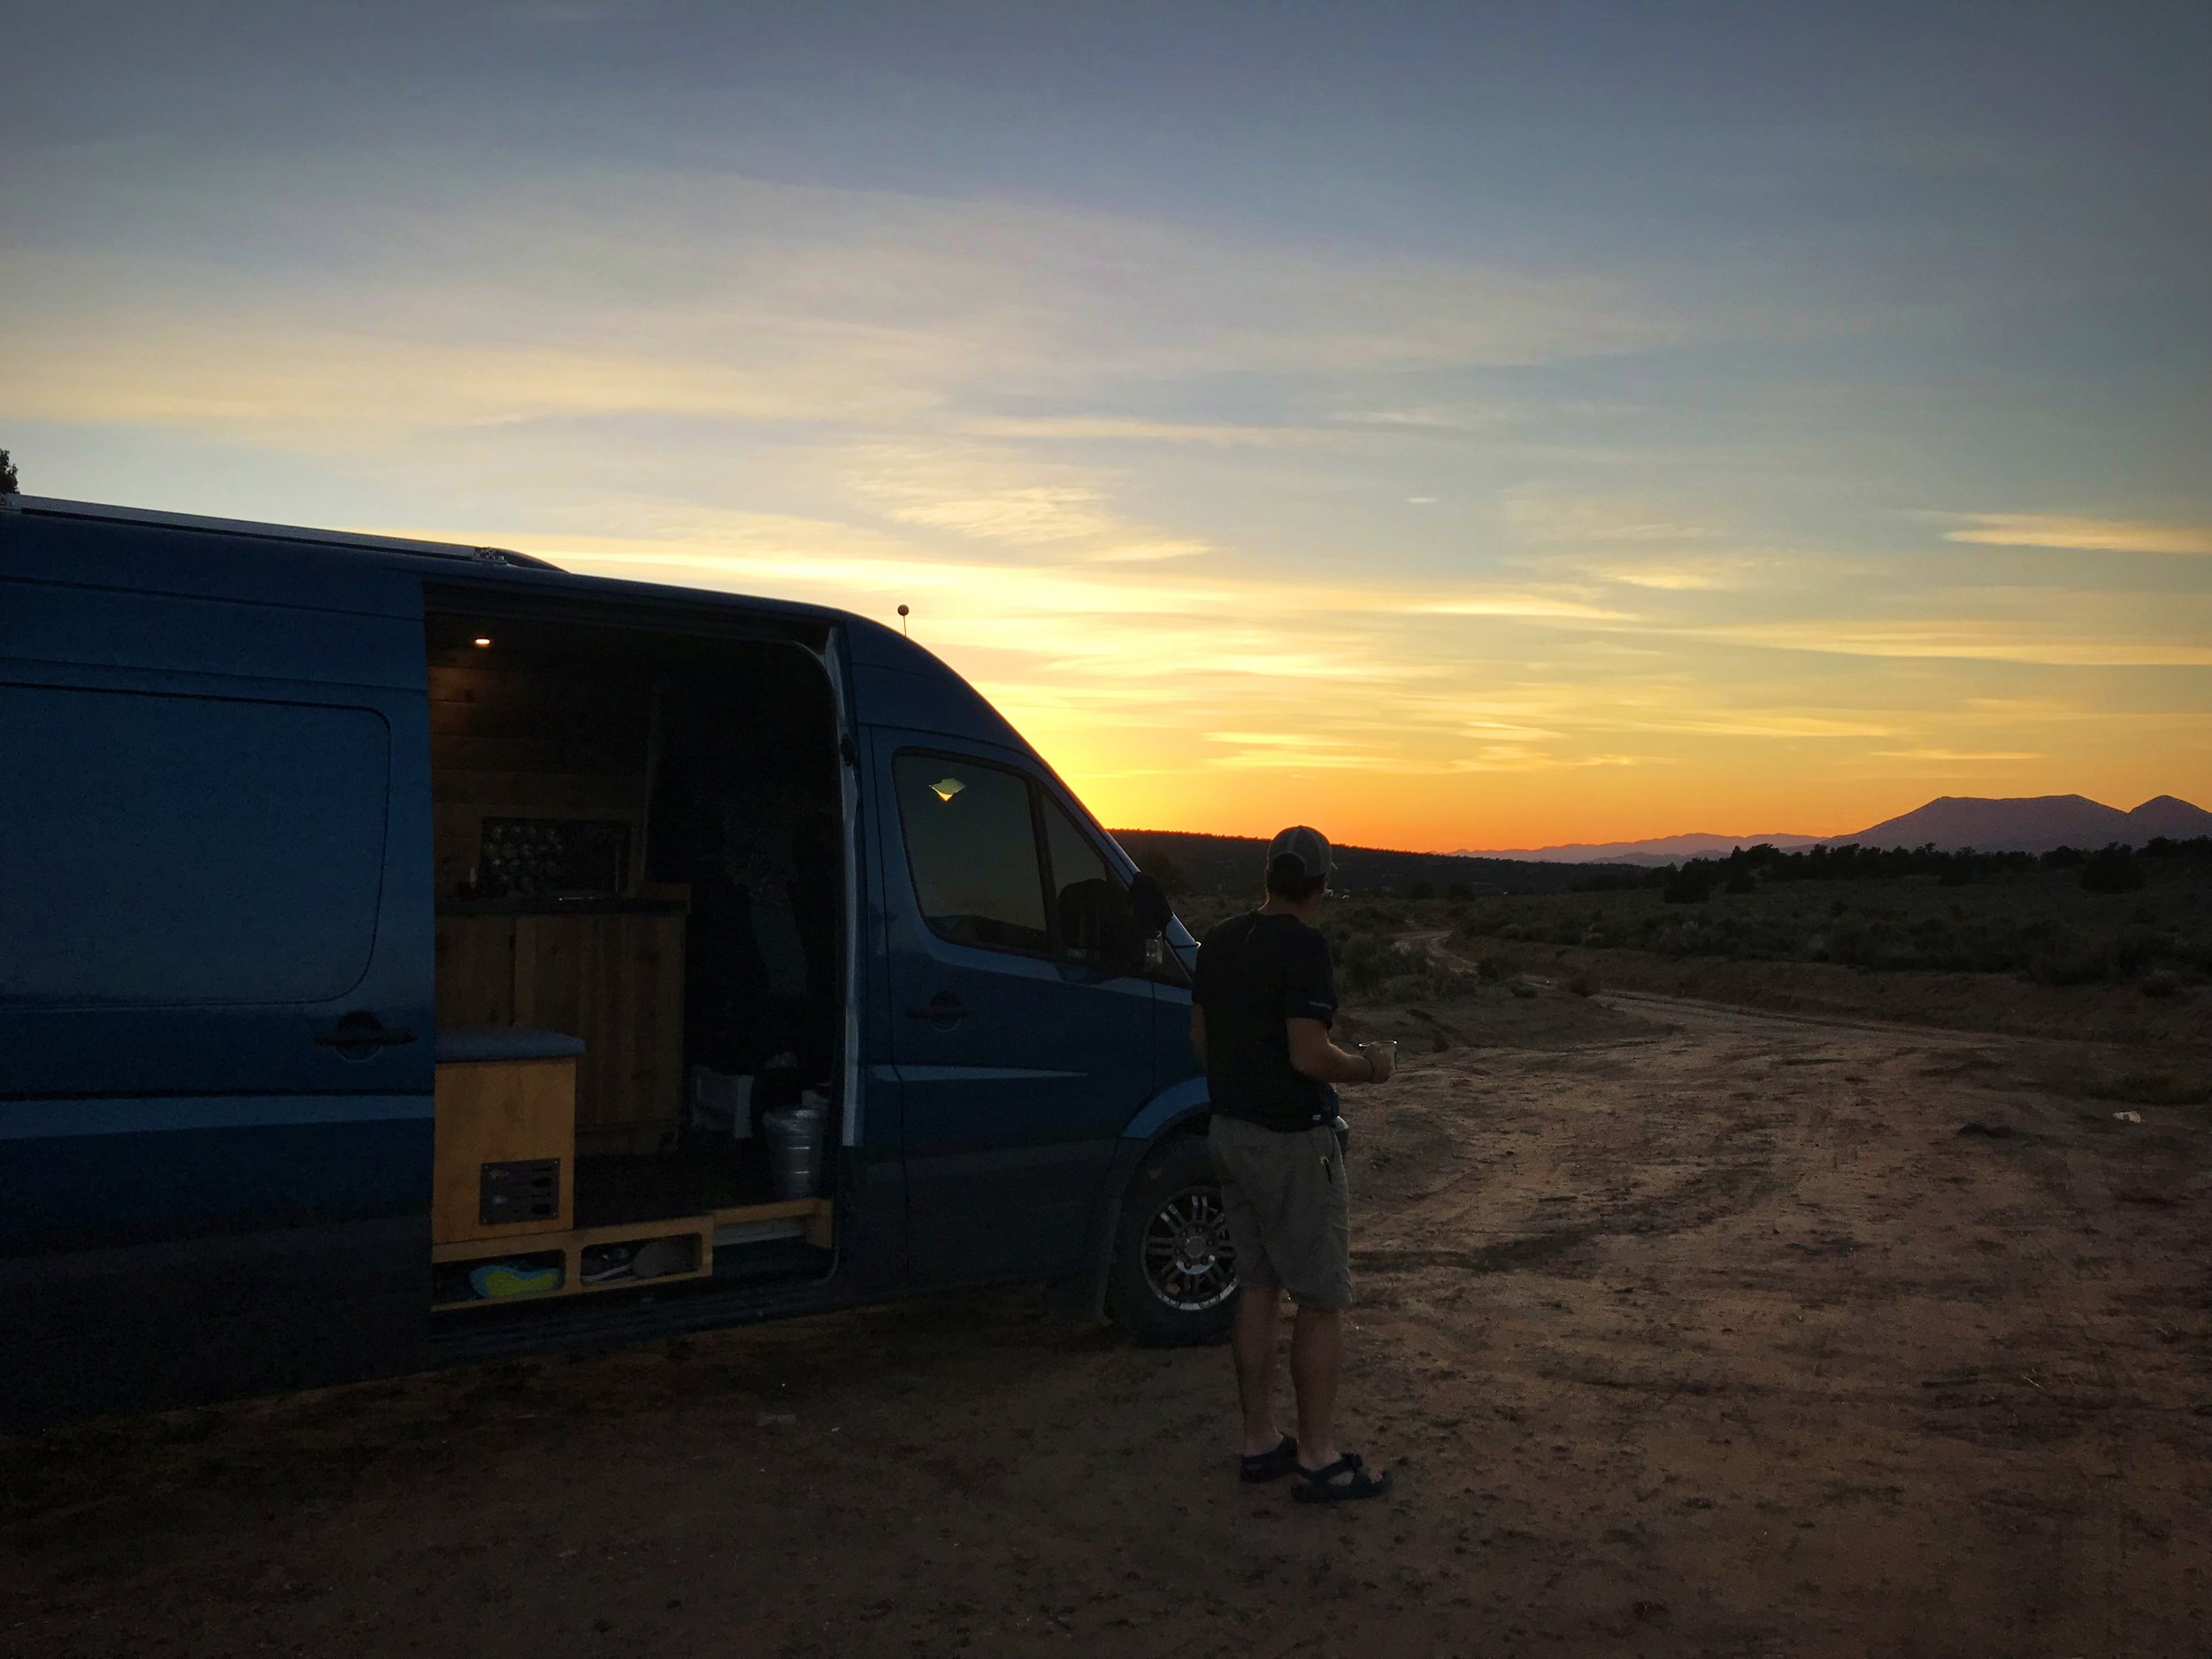 Our first free camping spot outside St. George, Utah on Dameron Valley Road.